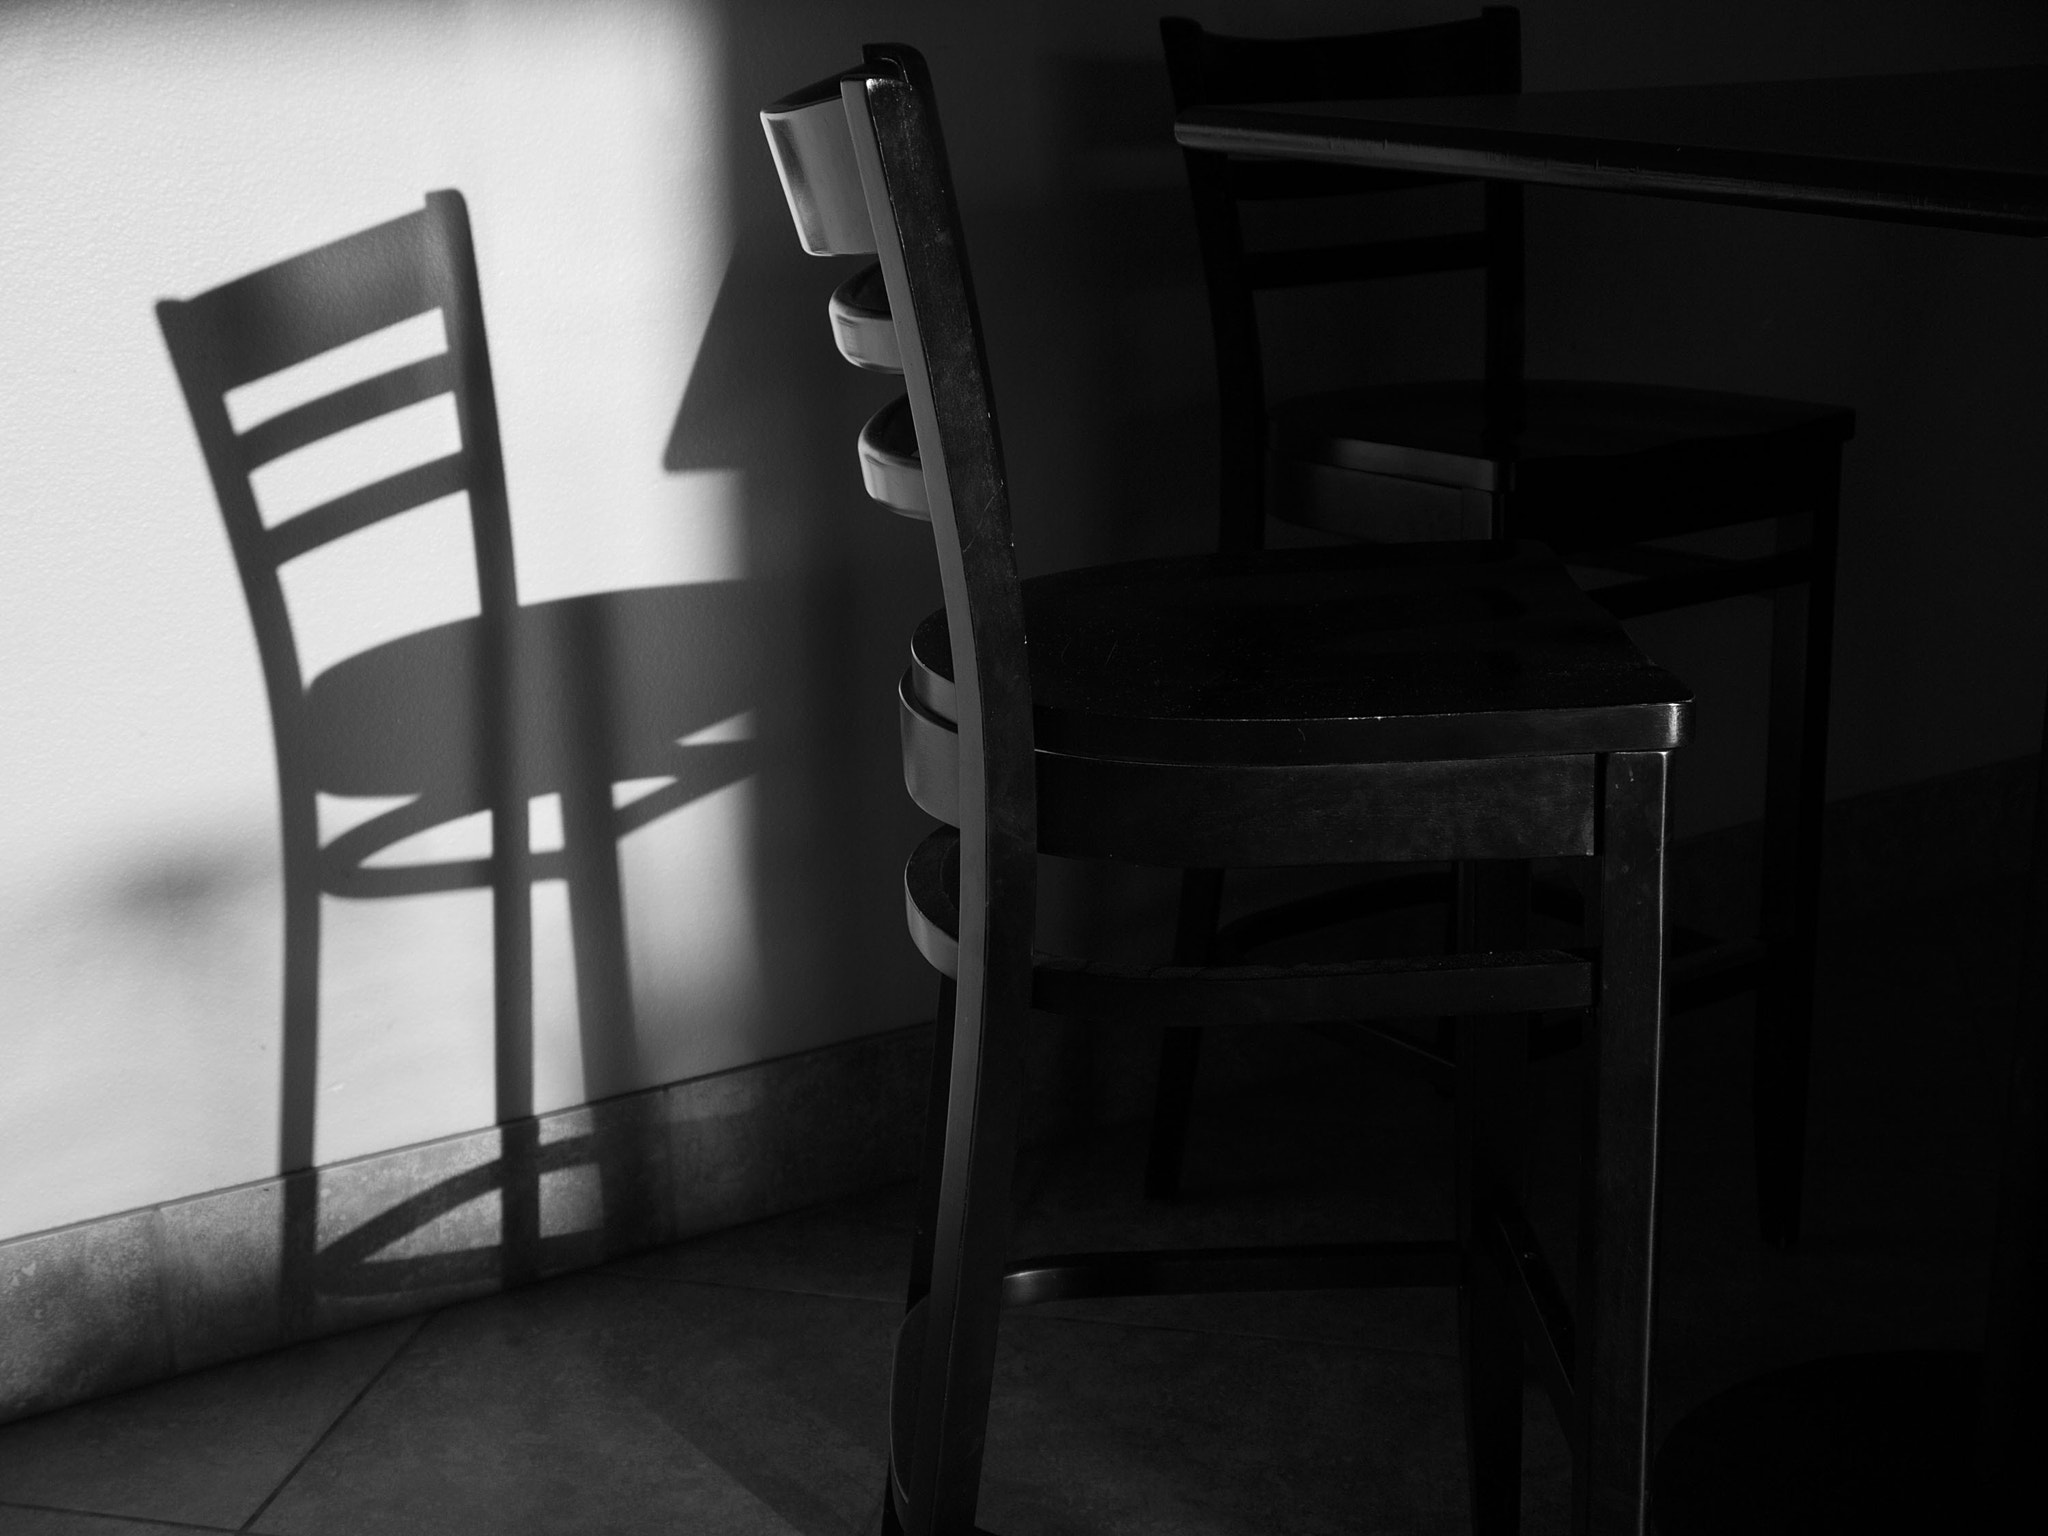 Photograph Etude with Chairs #9 by Milena Robinson on 500px